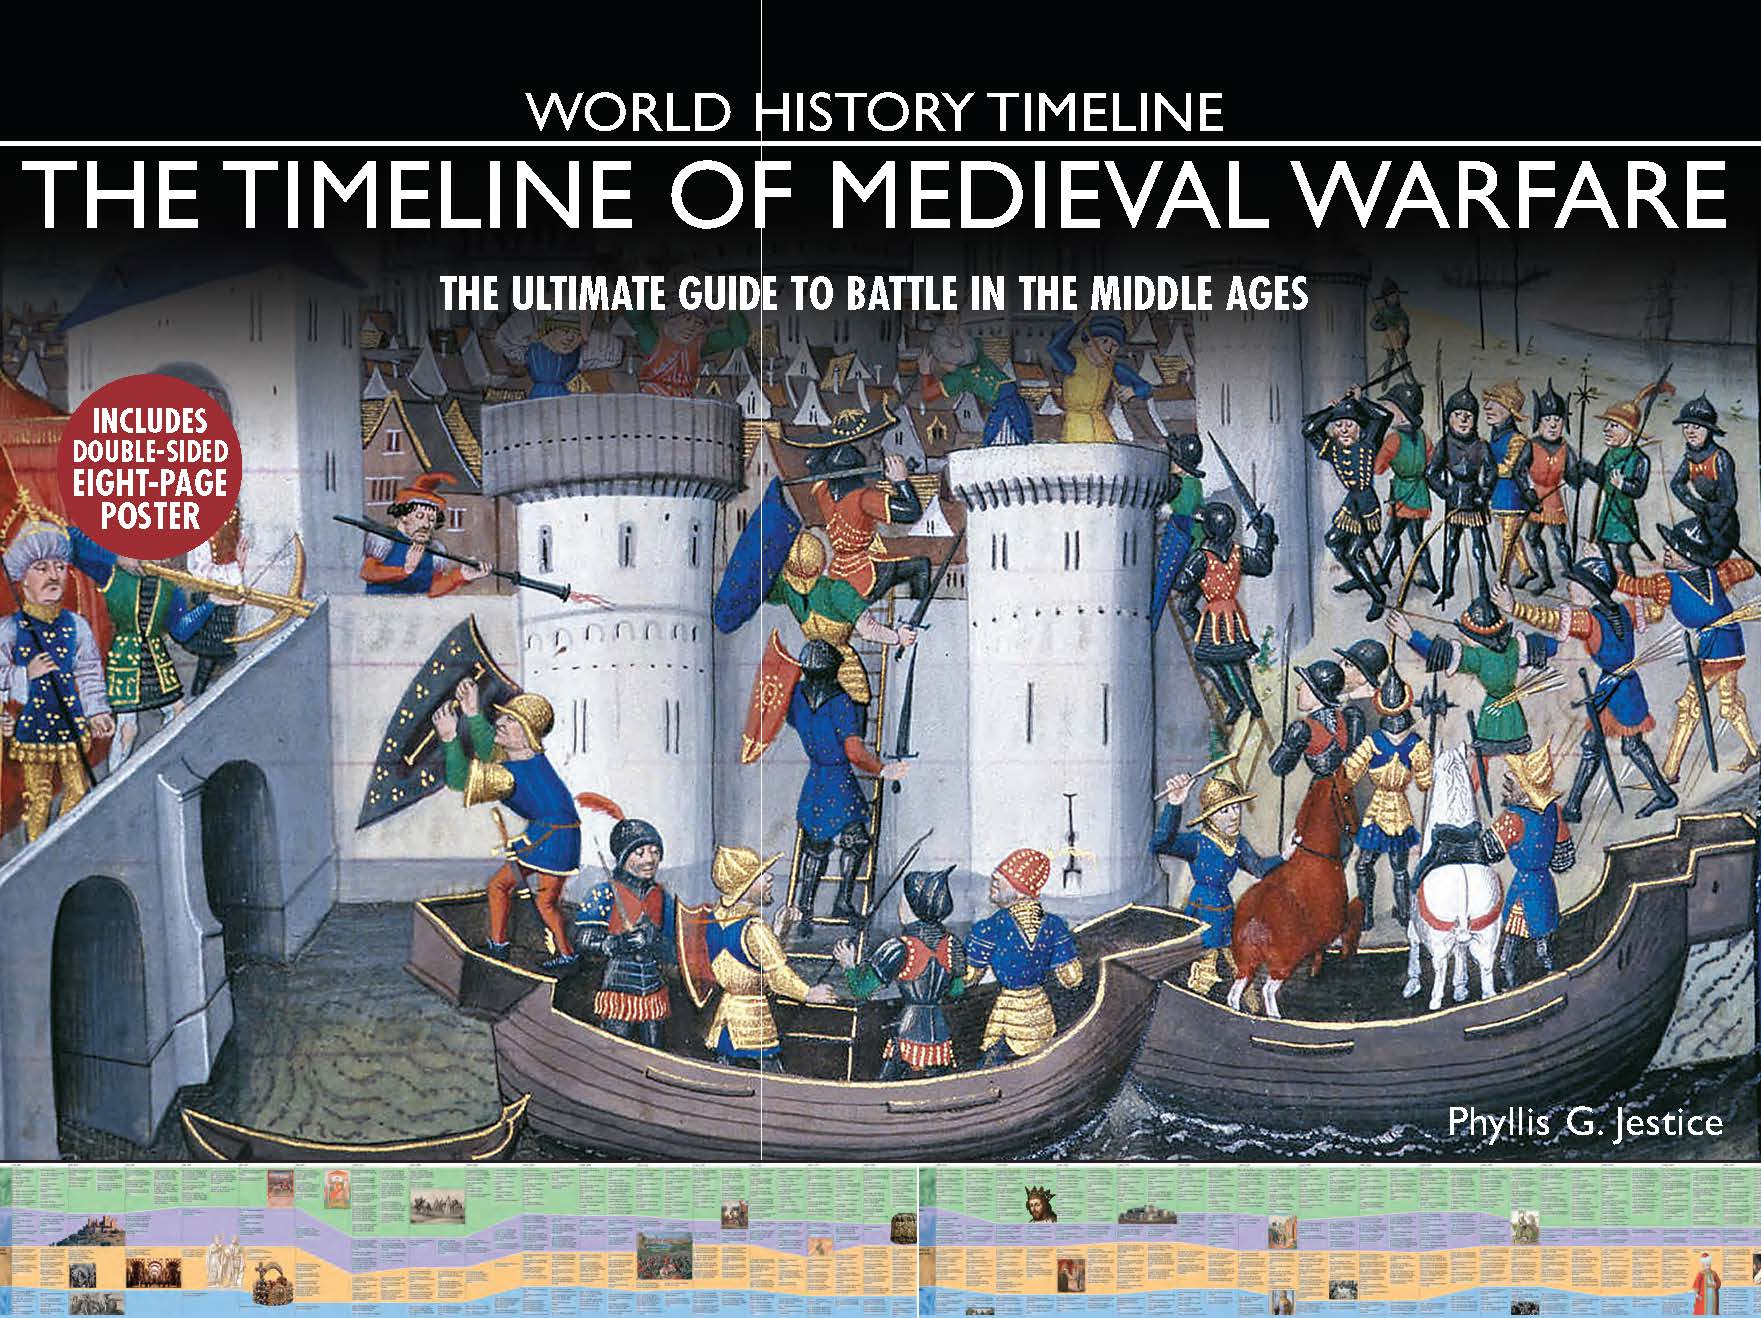 The Timeline of Medieval Warfare